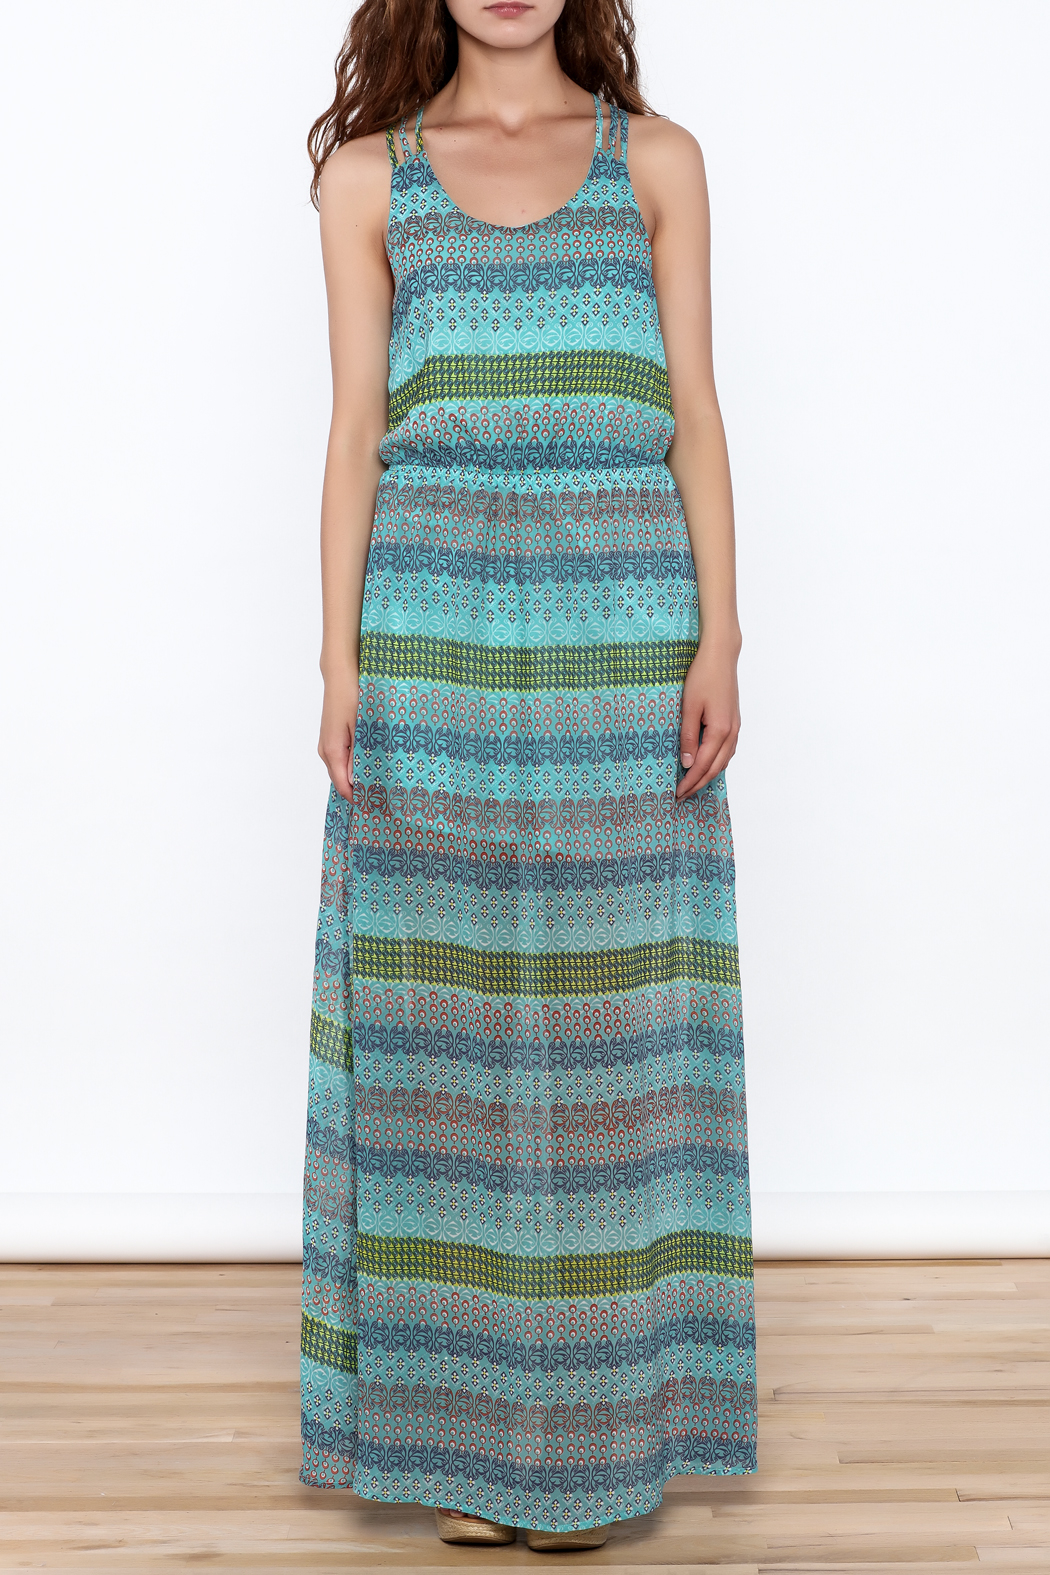 Umgee USA Anne Sleeveless Maxi Dress - Front Full Image